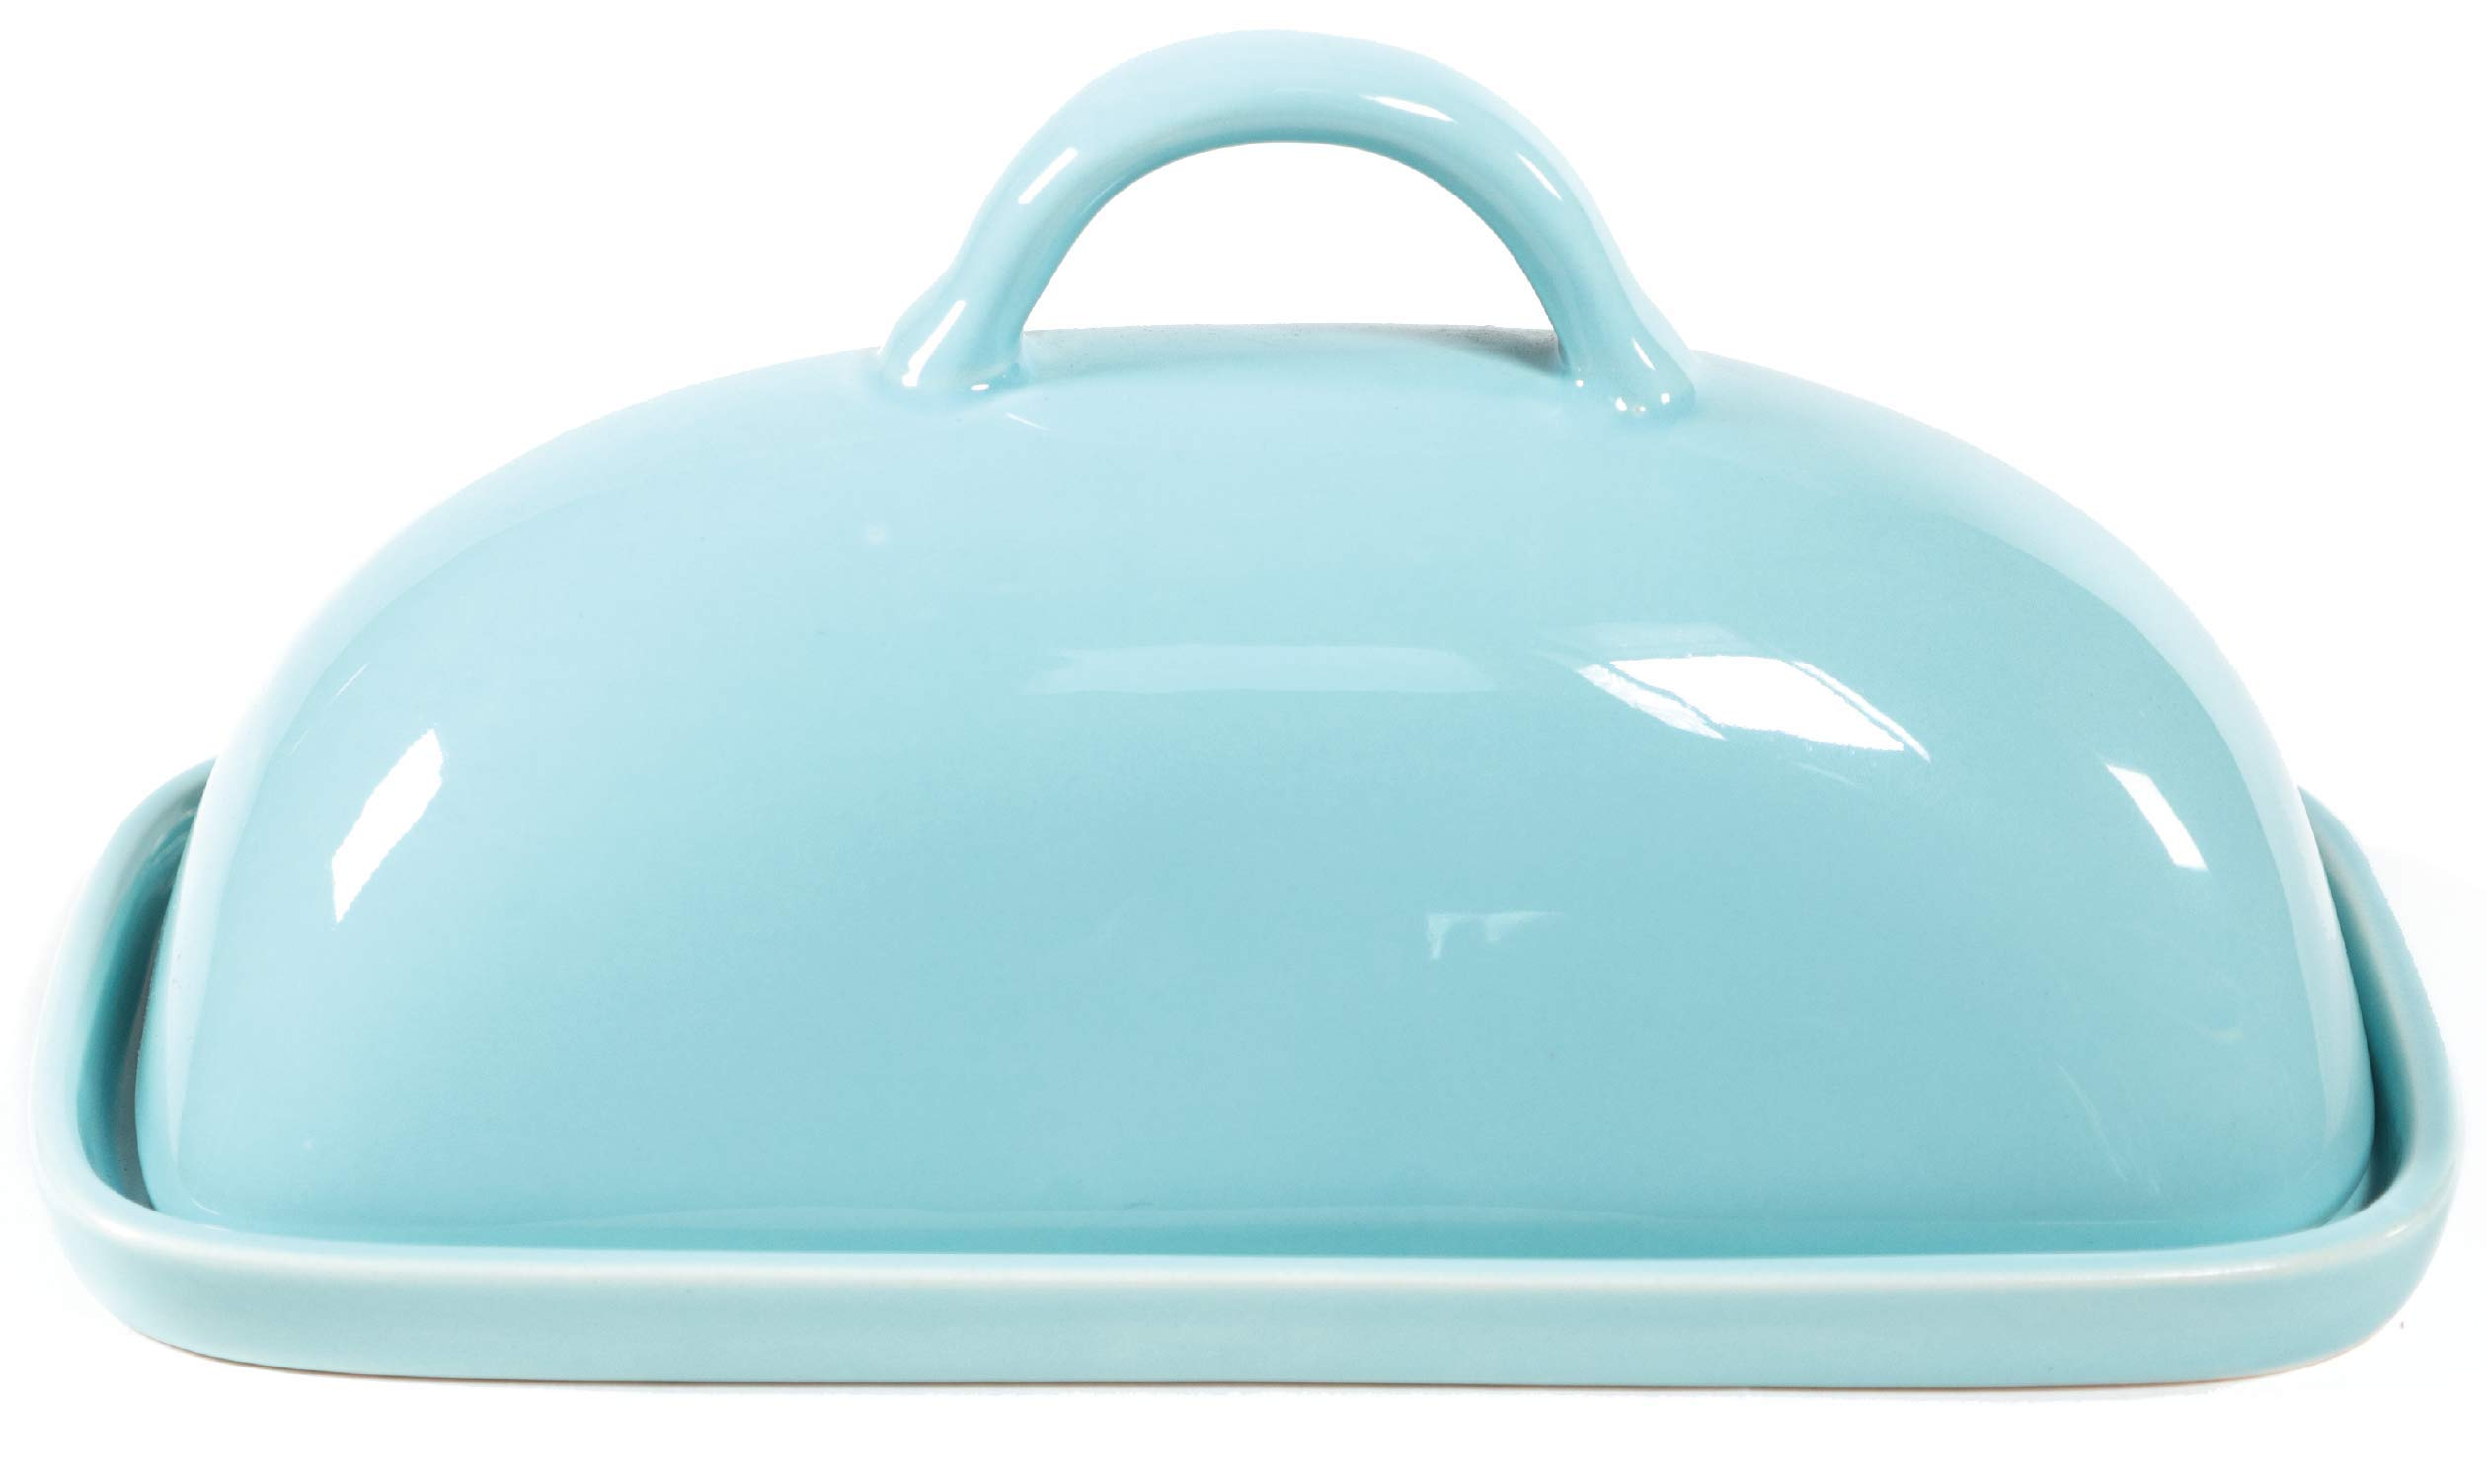 Ceramic Butter Dish With Lid - Mason Covered Butter Dish - Butter Keeper Holds 1 Full Stick of Butter - Includes Tray With Cover (Blue)